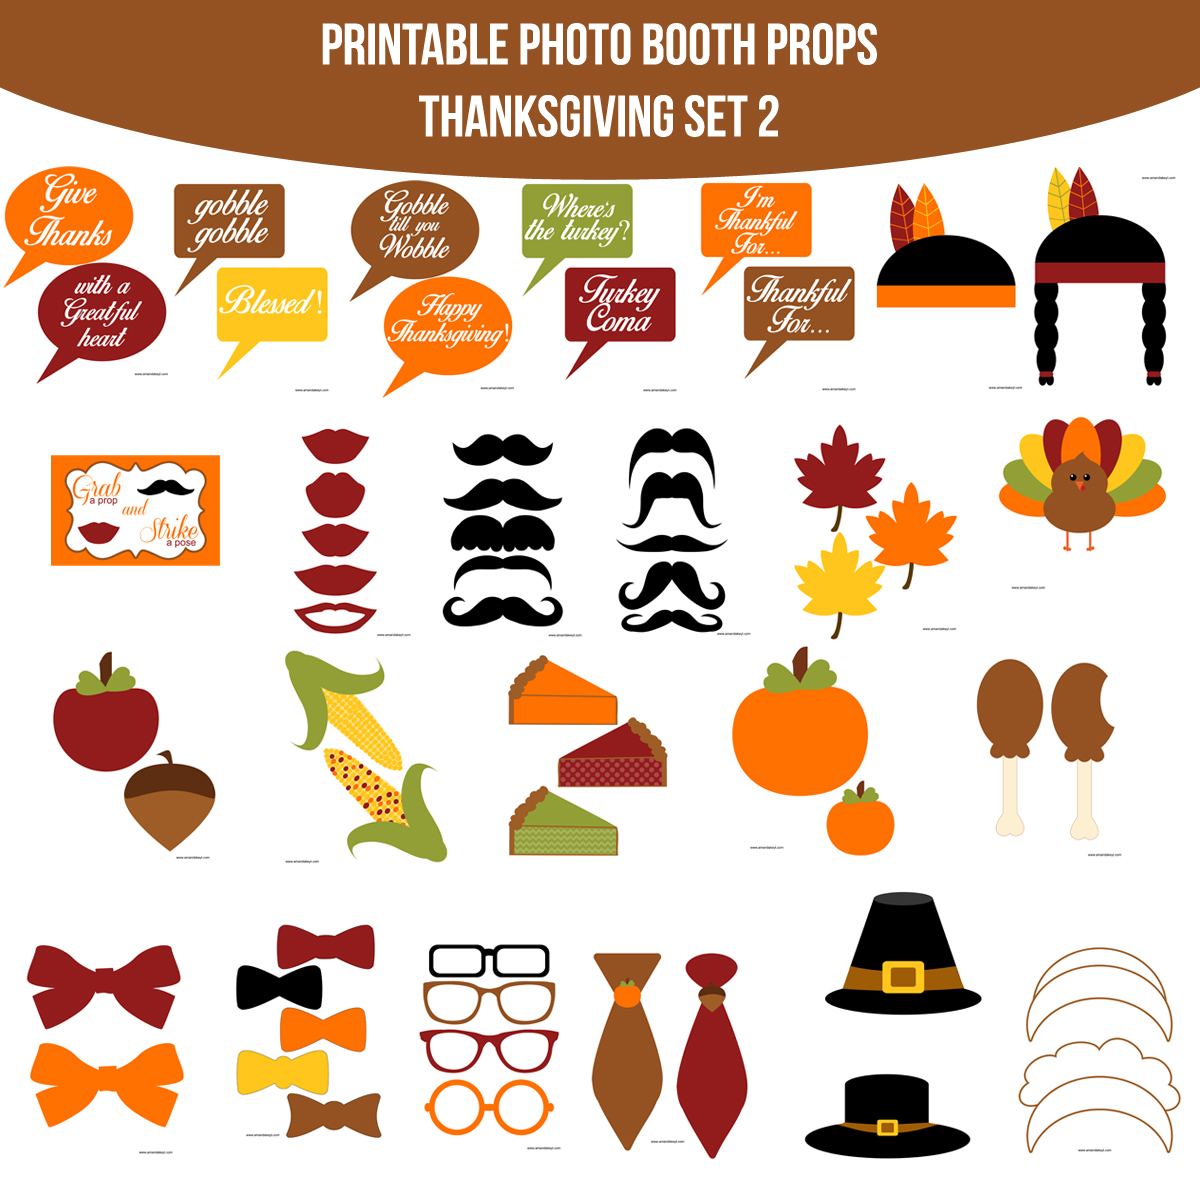 See the Set - To View The Whole Thanksgiving 2 Printable Photo Booth Prop Set Click Here